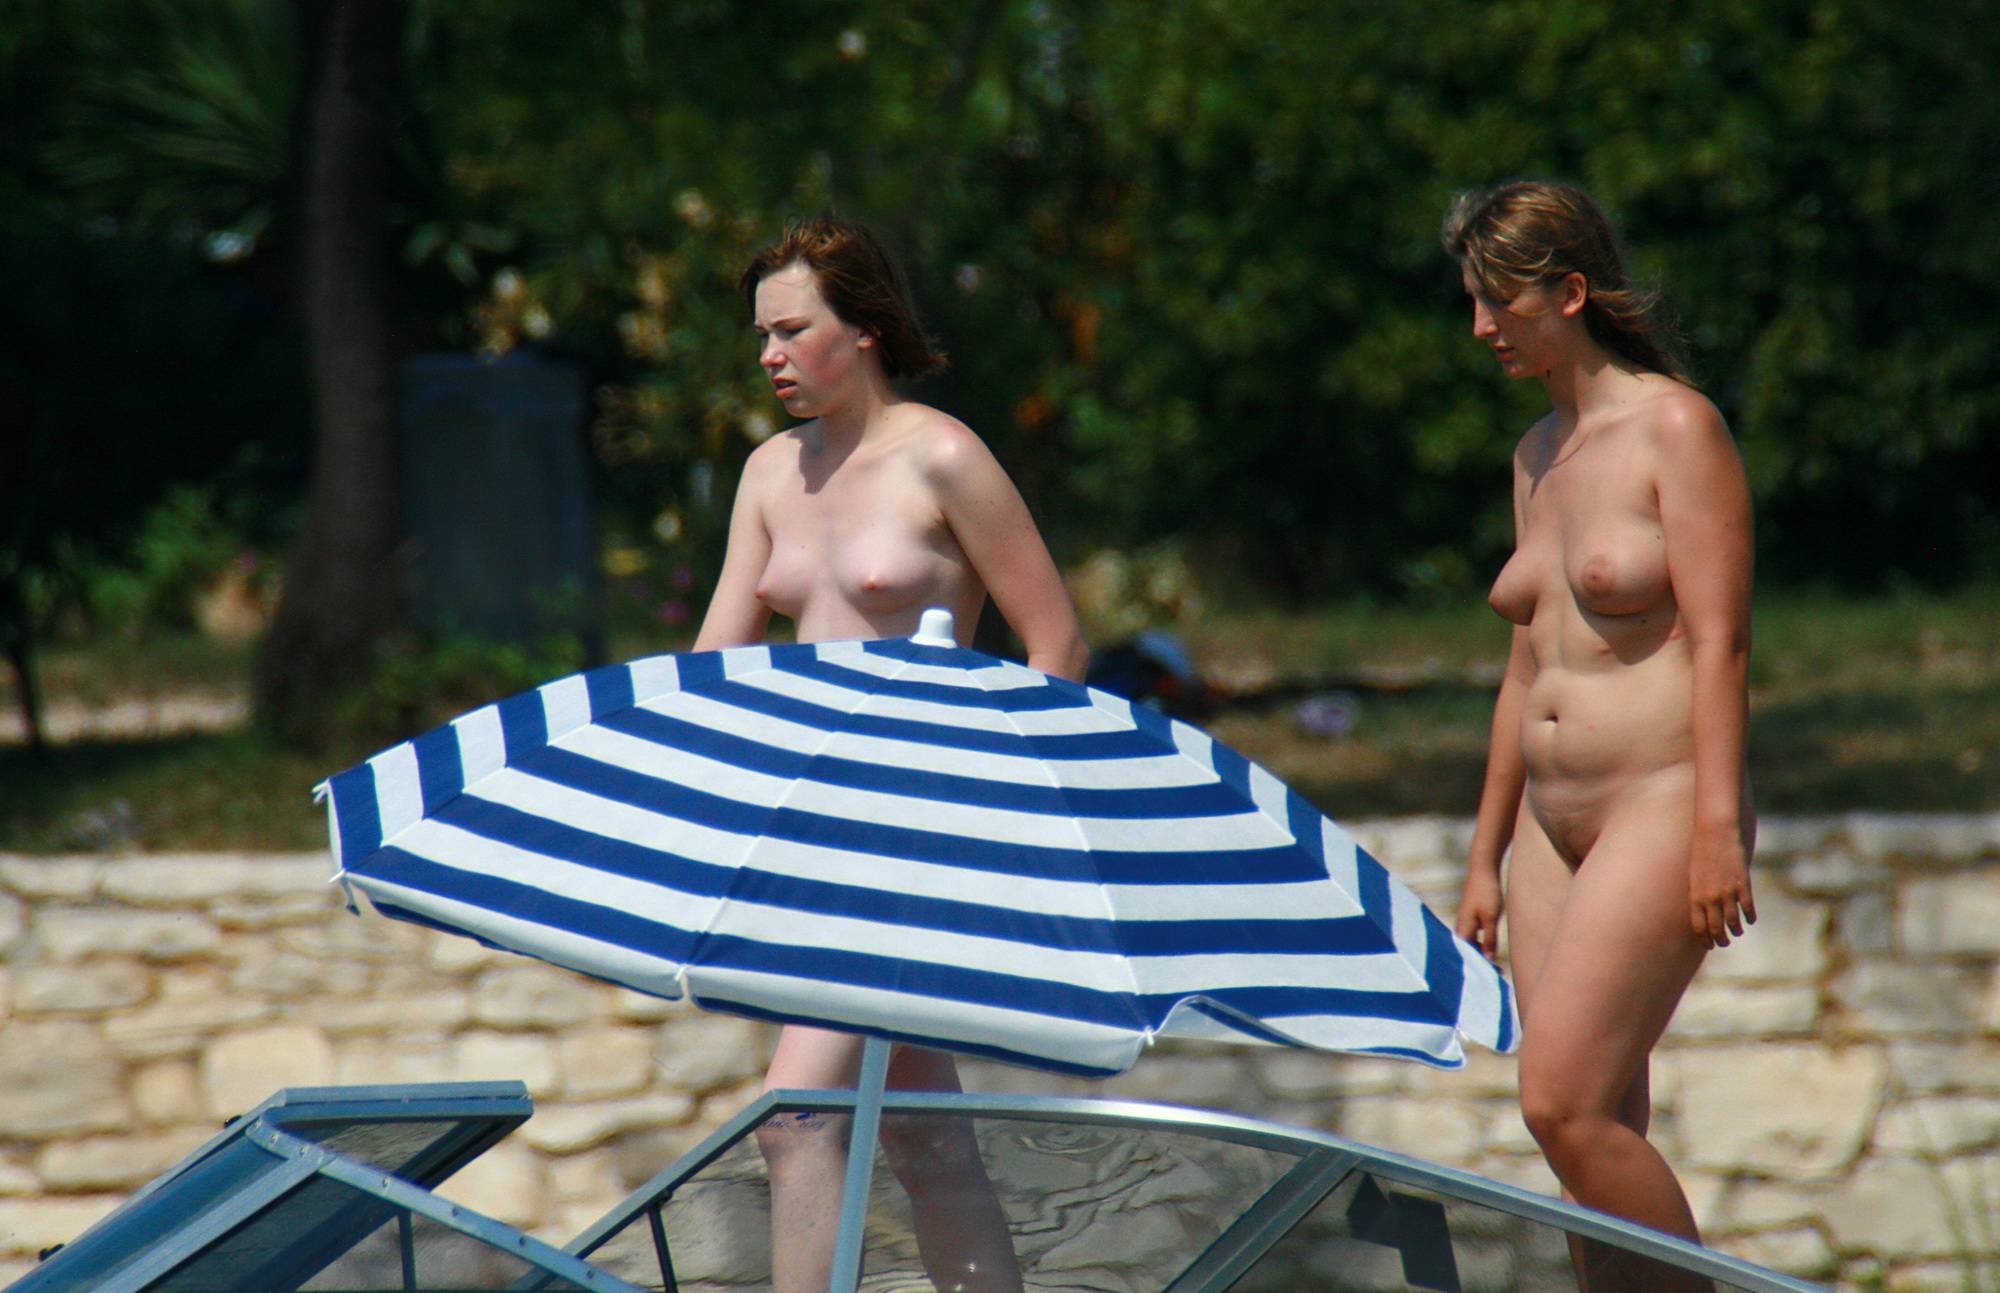 Pure Nudism Simple Stroll On The Pier - 2